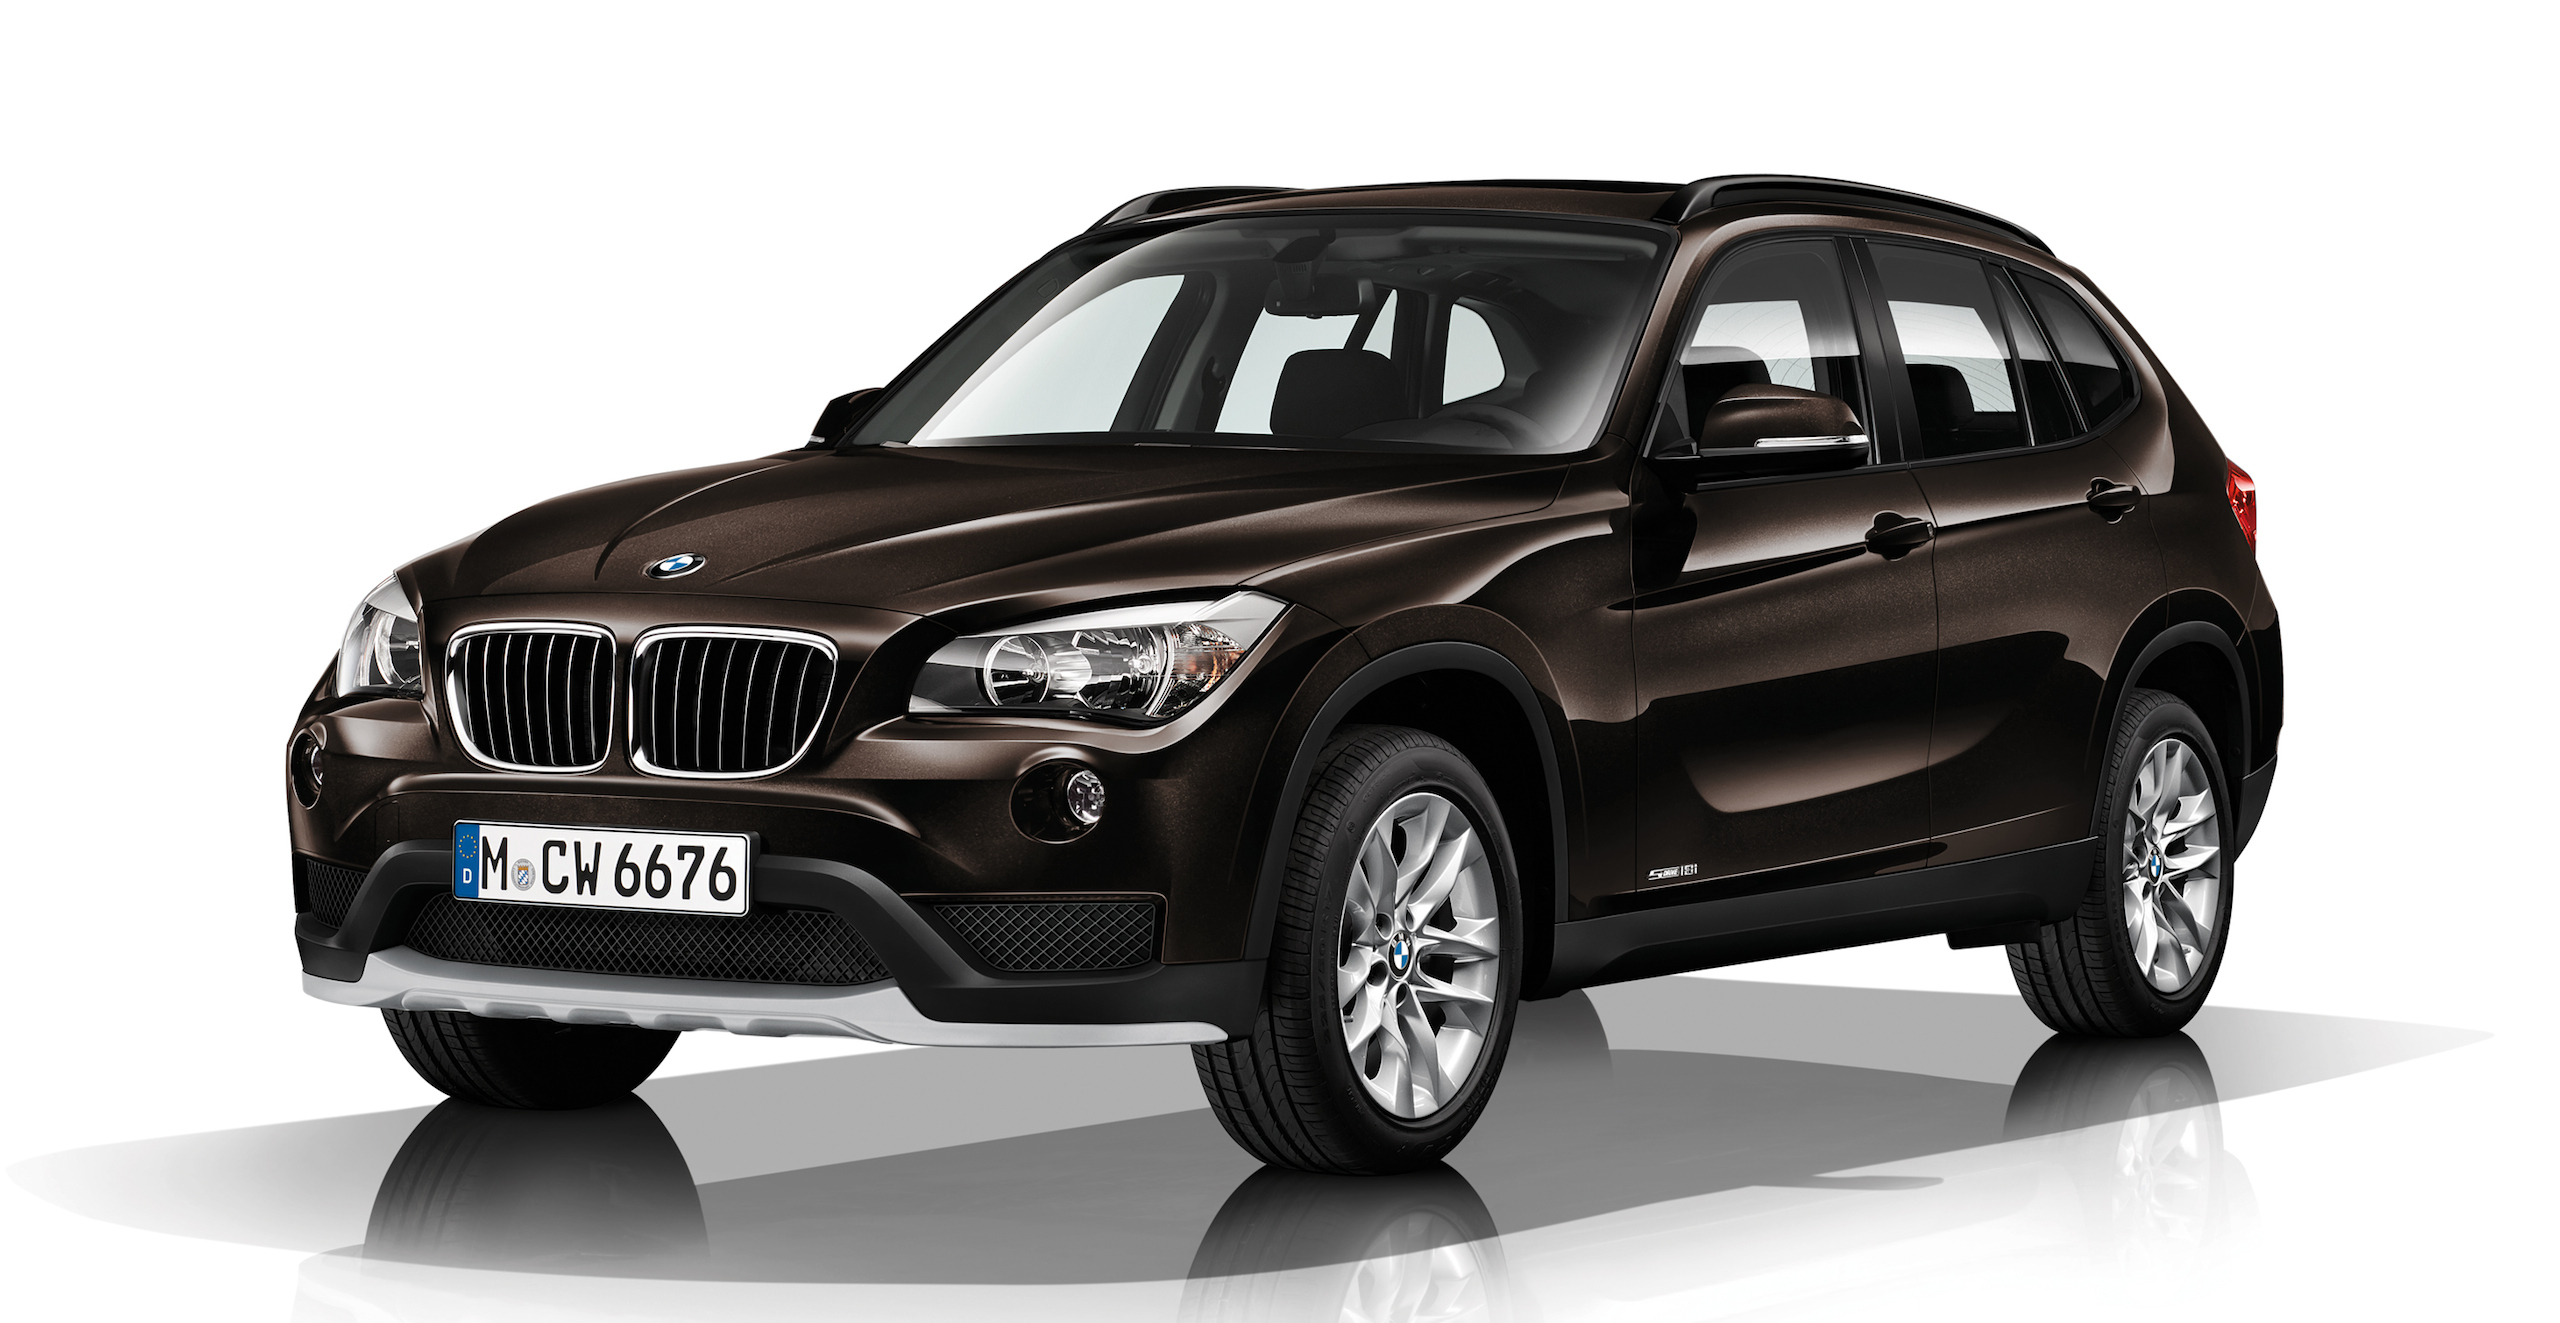 bmw x1 compact suv gets a minor refresh for 2014 image 217488. Black Bedroom Furniture Sets. Home Design Ideas